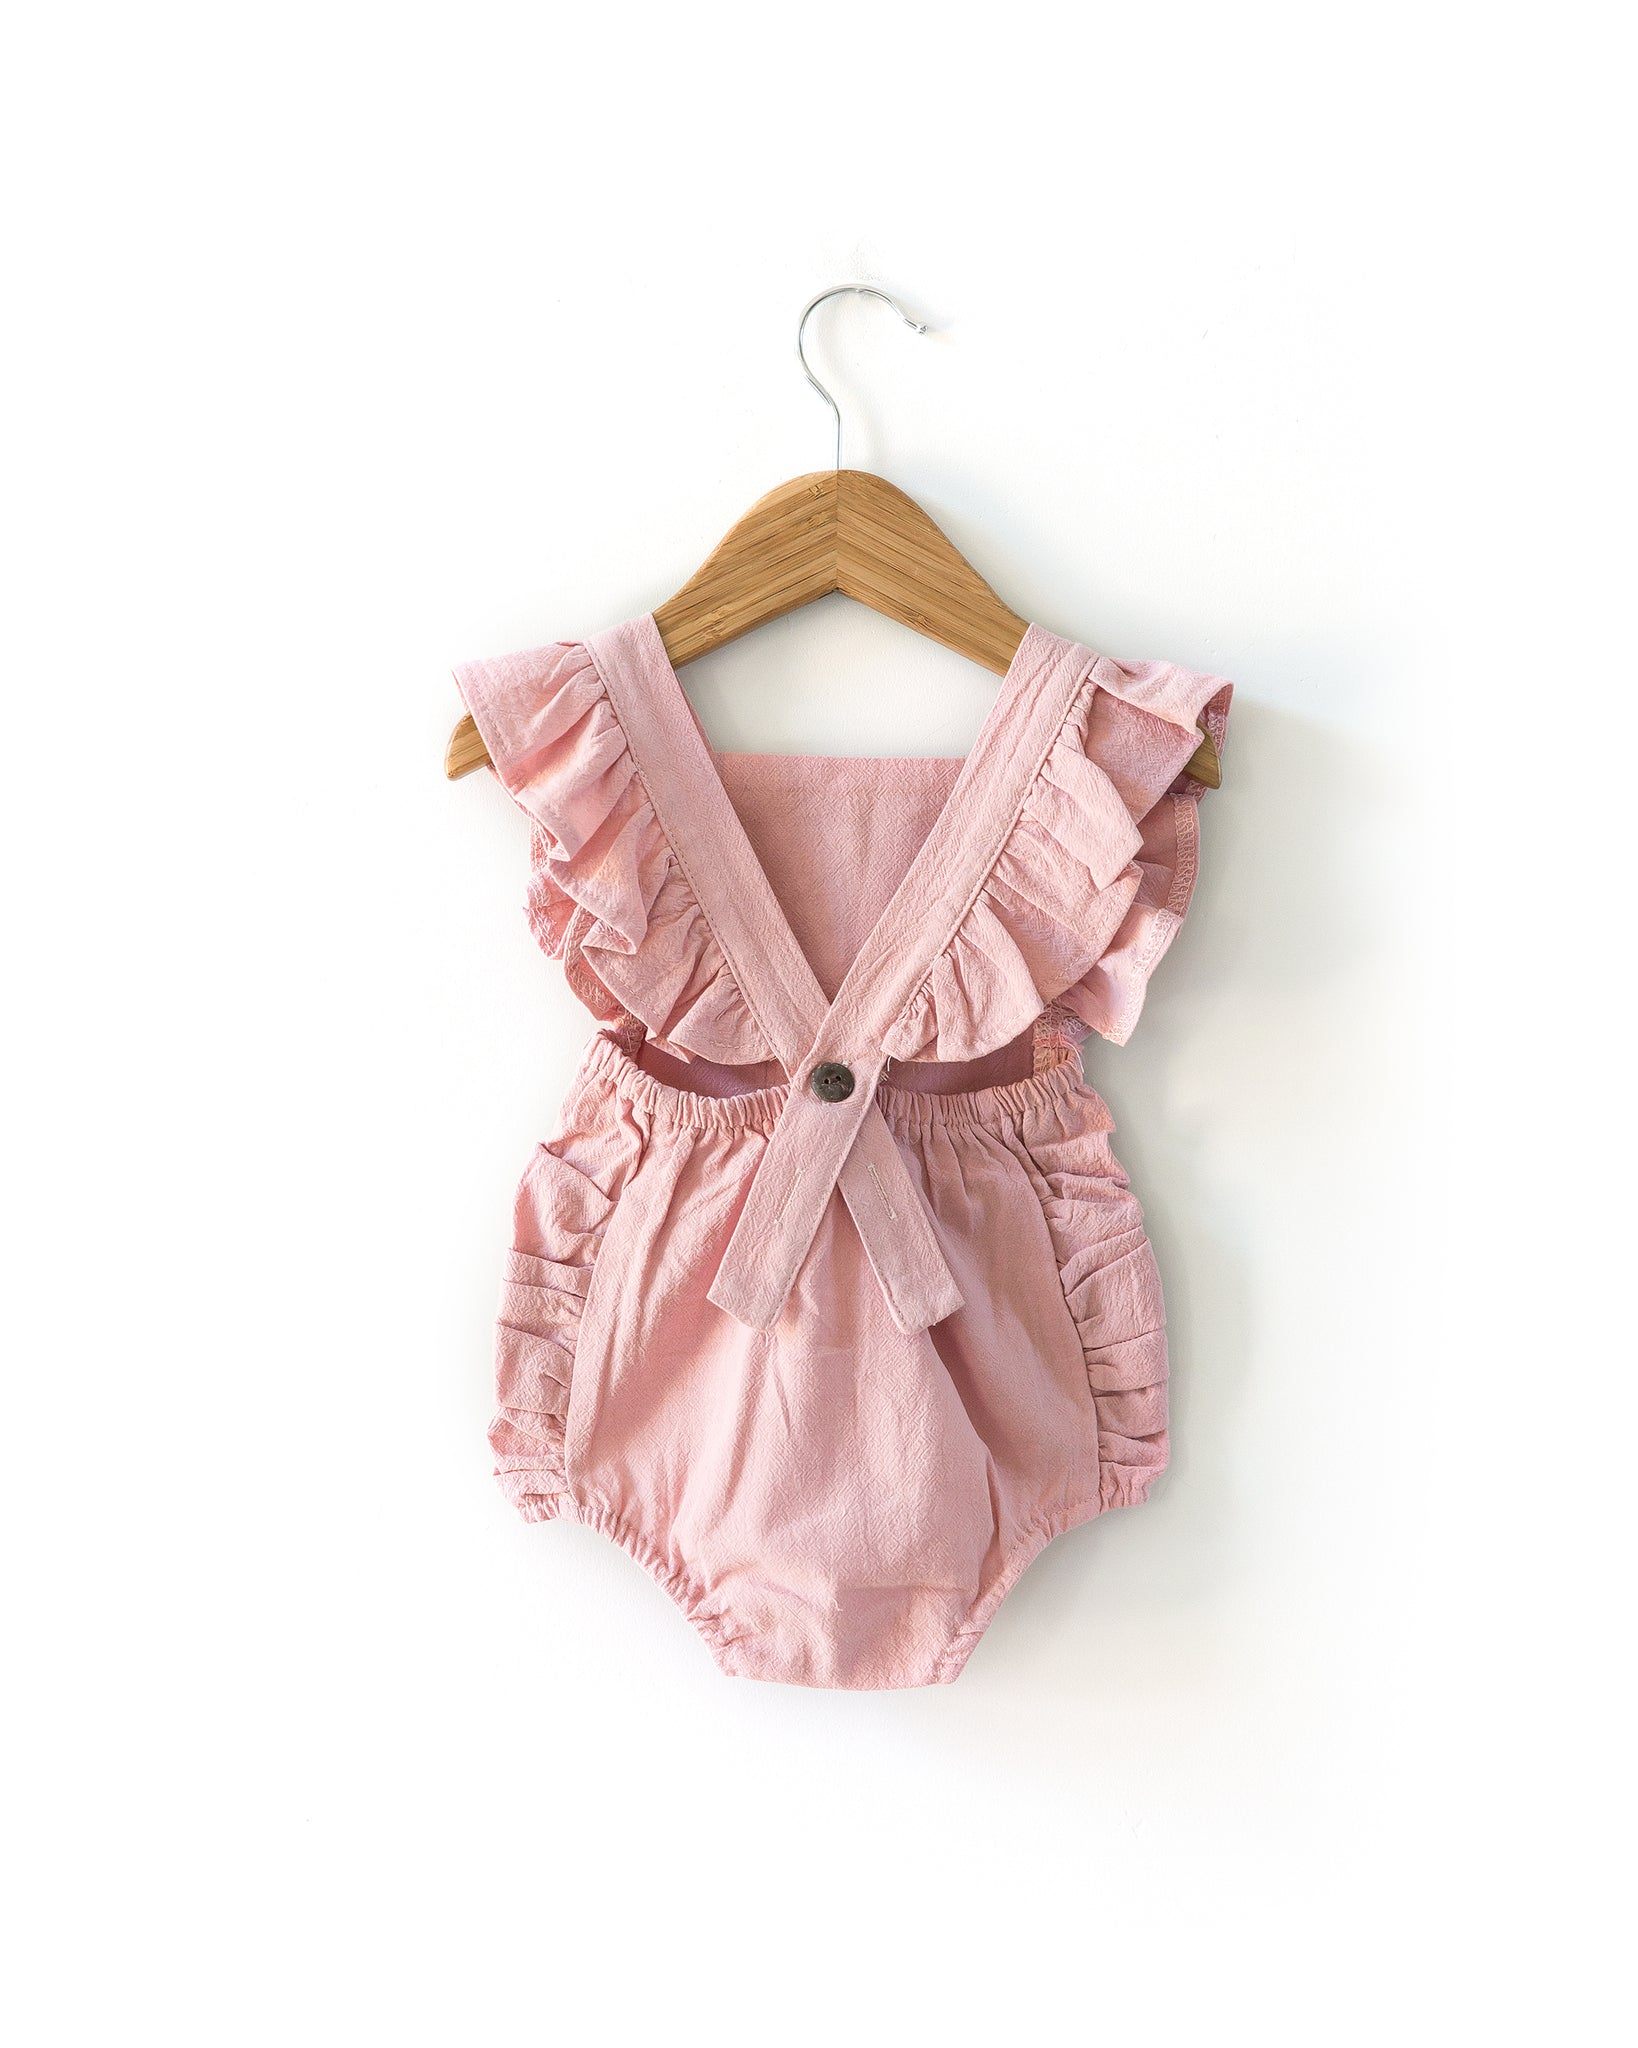 Evelyn Romper in Blush Pink - Reverie Threads